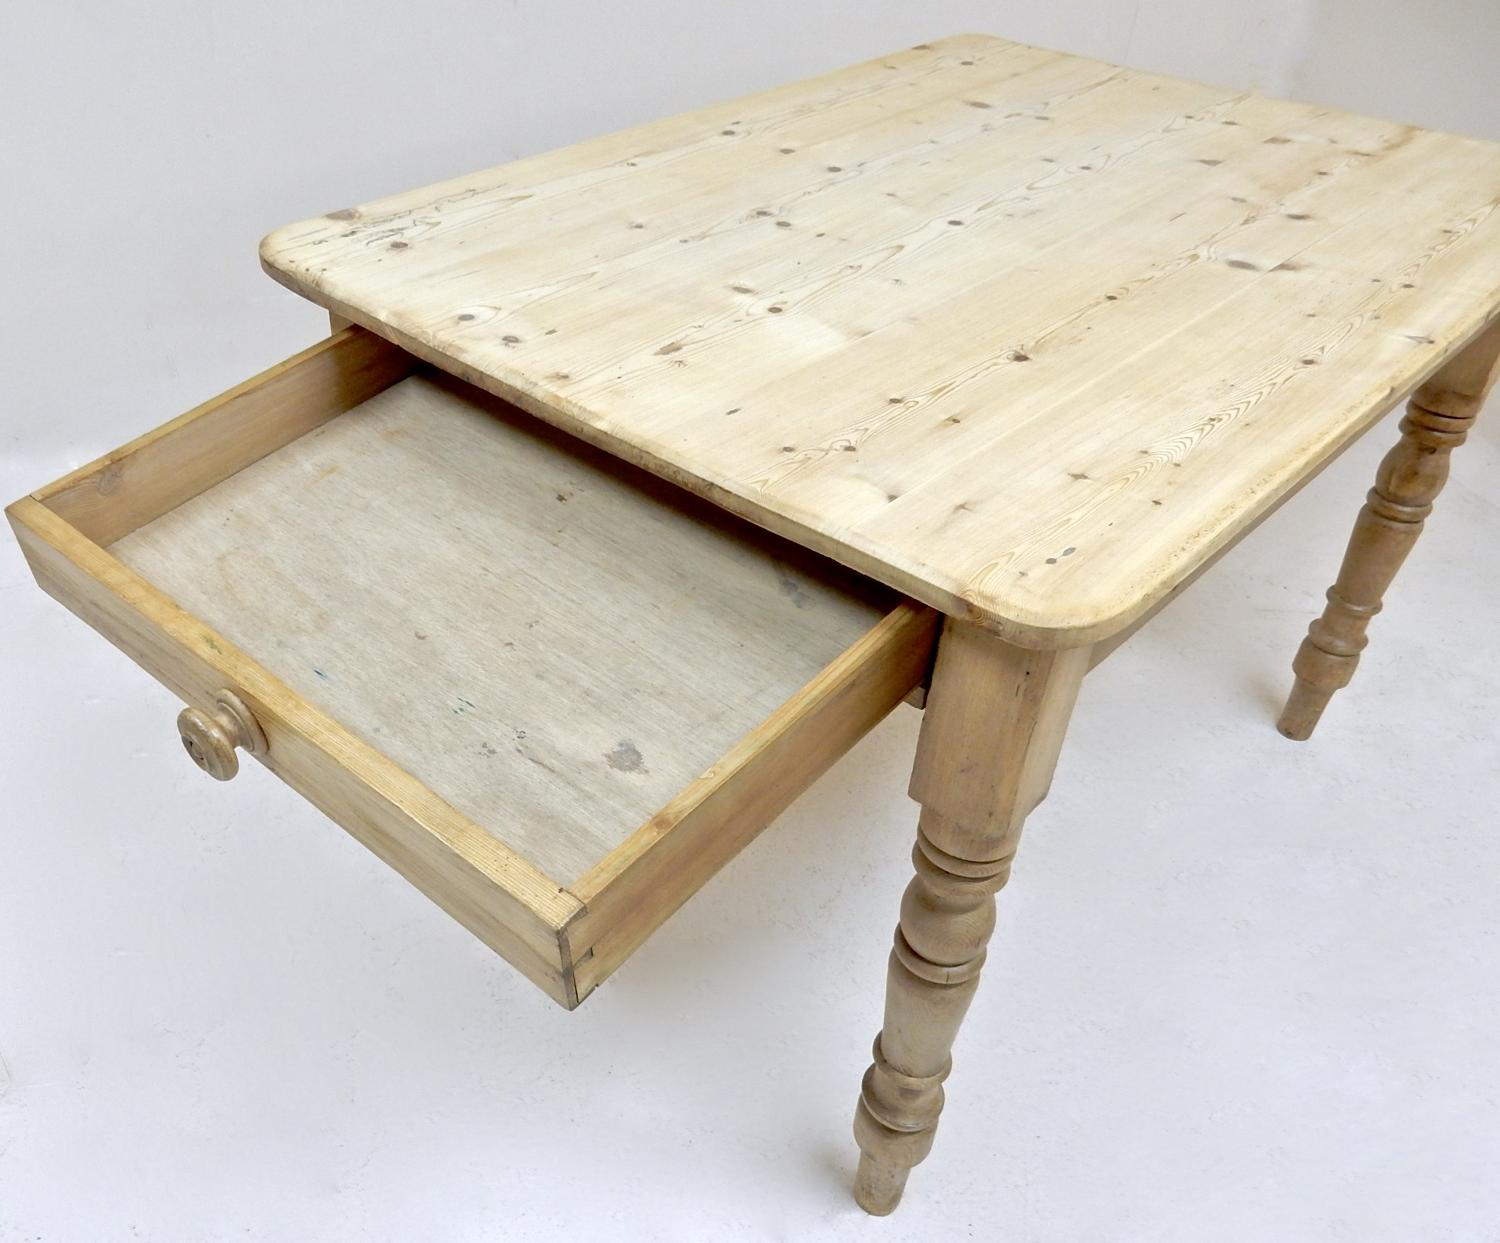 Pine Kitchen Tables And Chairs Pine Kitchen Table In Tables And Chairs